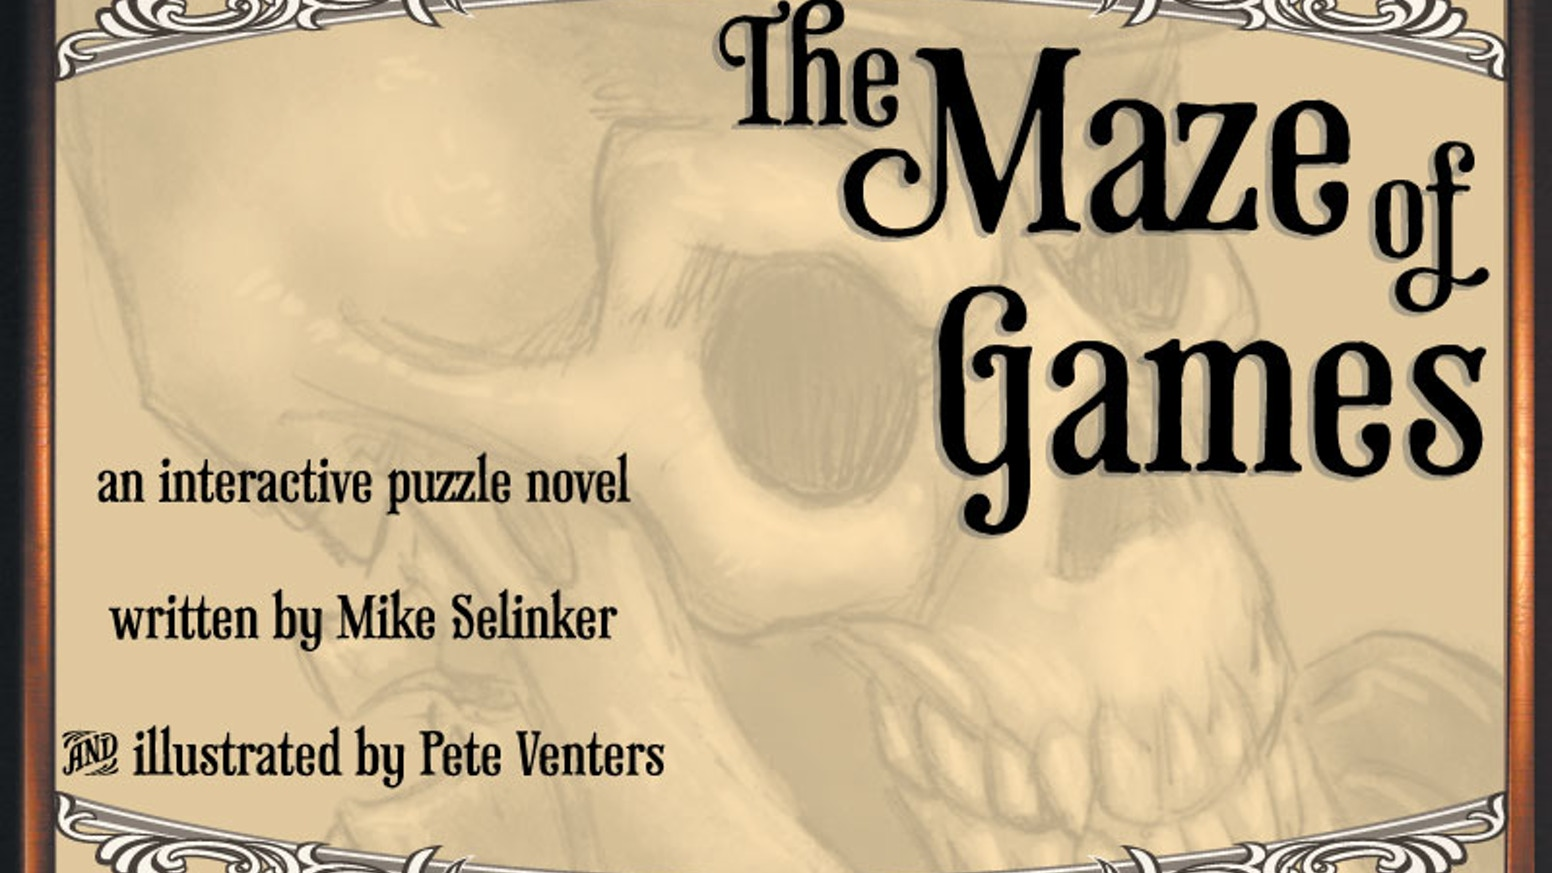 An interactive puzzle novel written by Mike Selinker, with enchanting illustrations by Pete Venters.